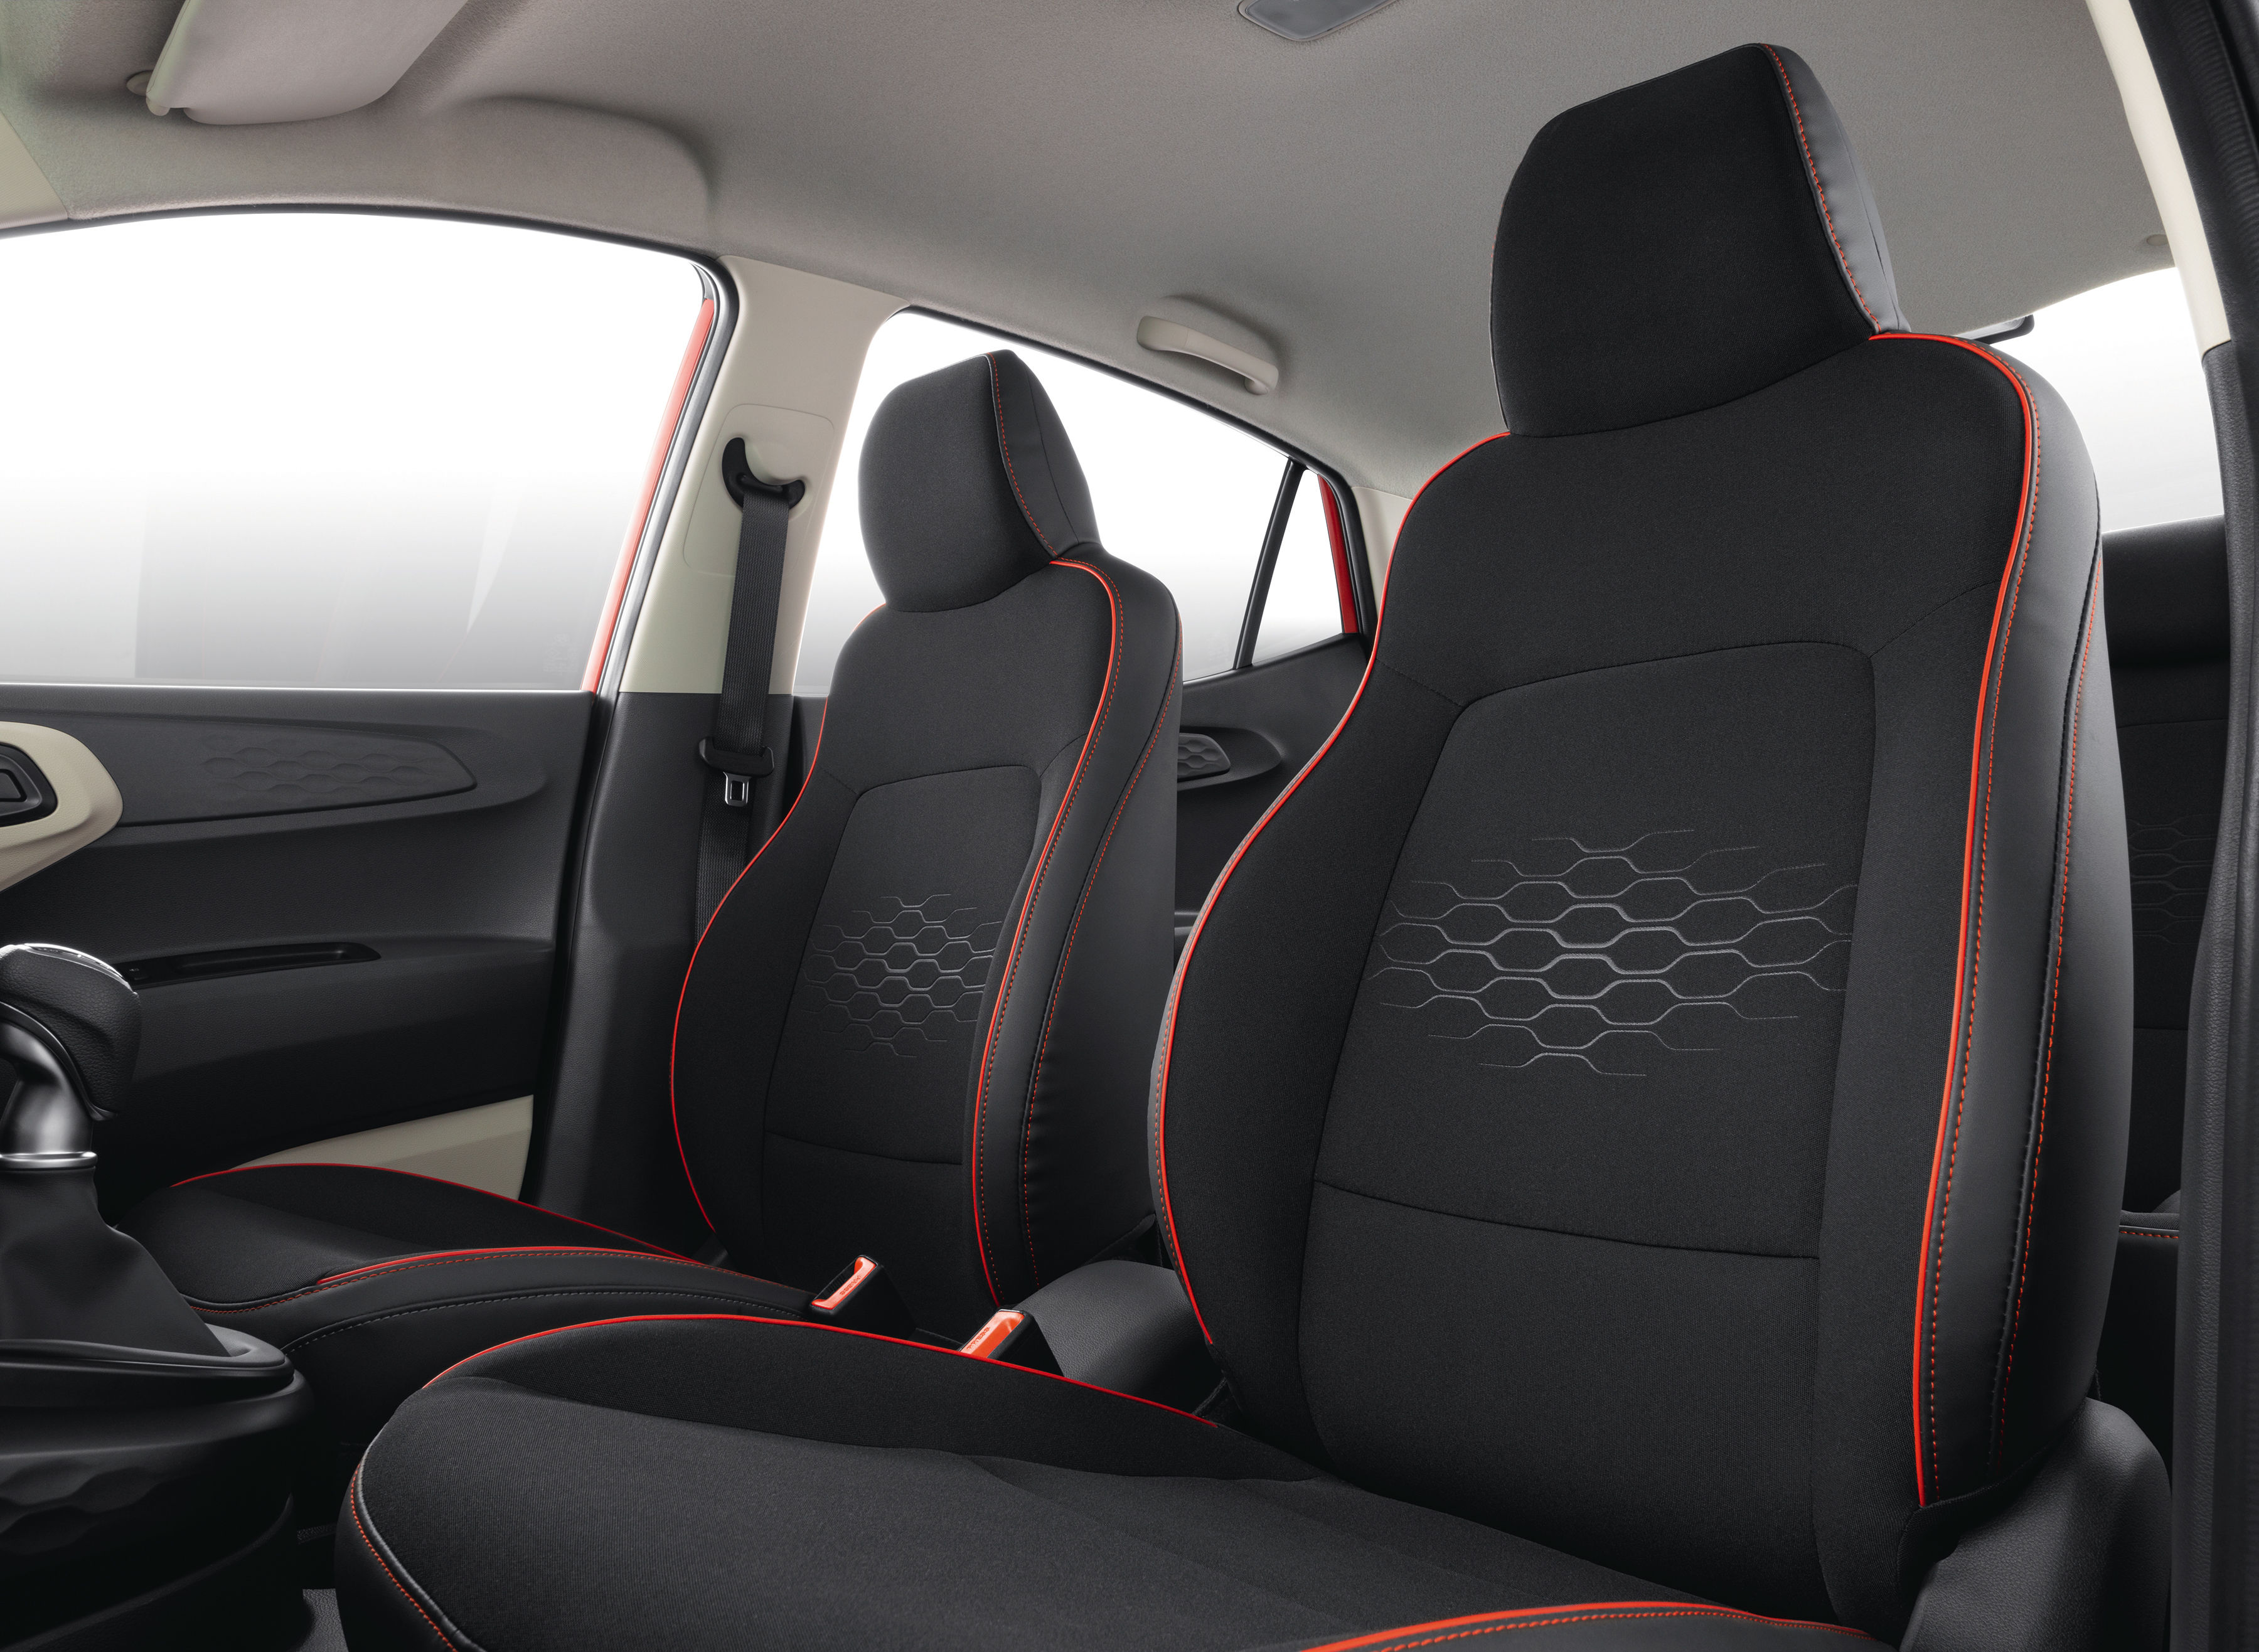 The turbo engine version gets sporty black colour hues on the inside while the other variants have a beige colour theme.